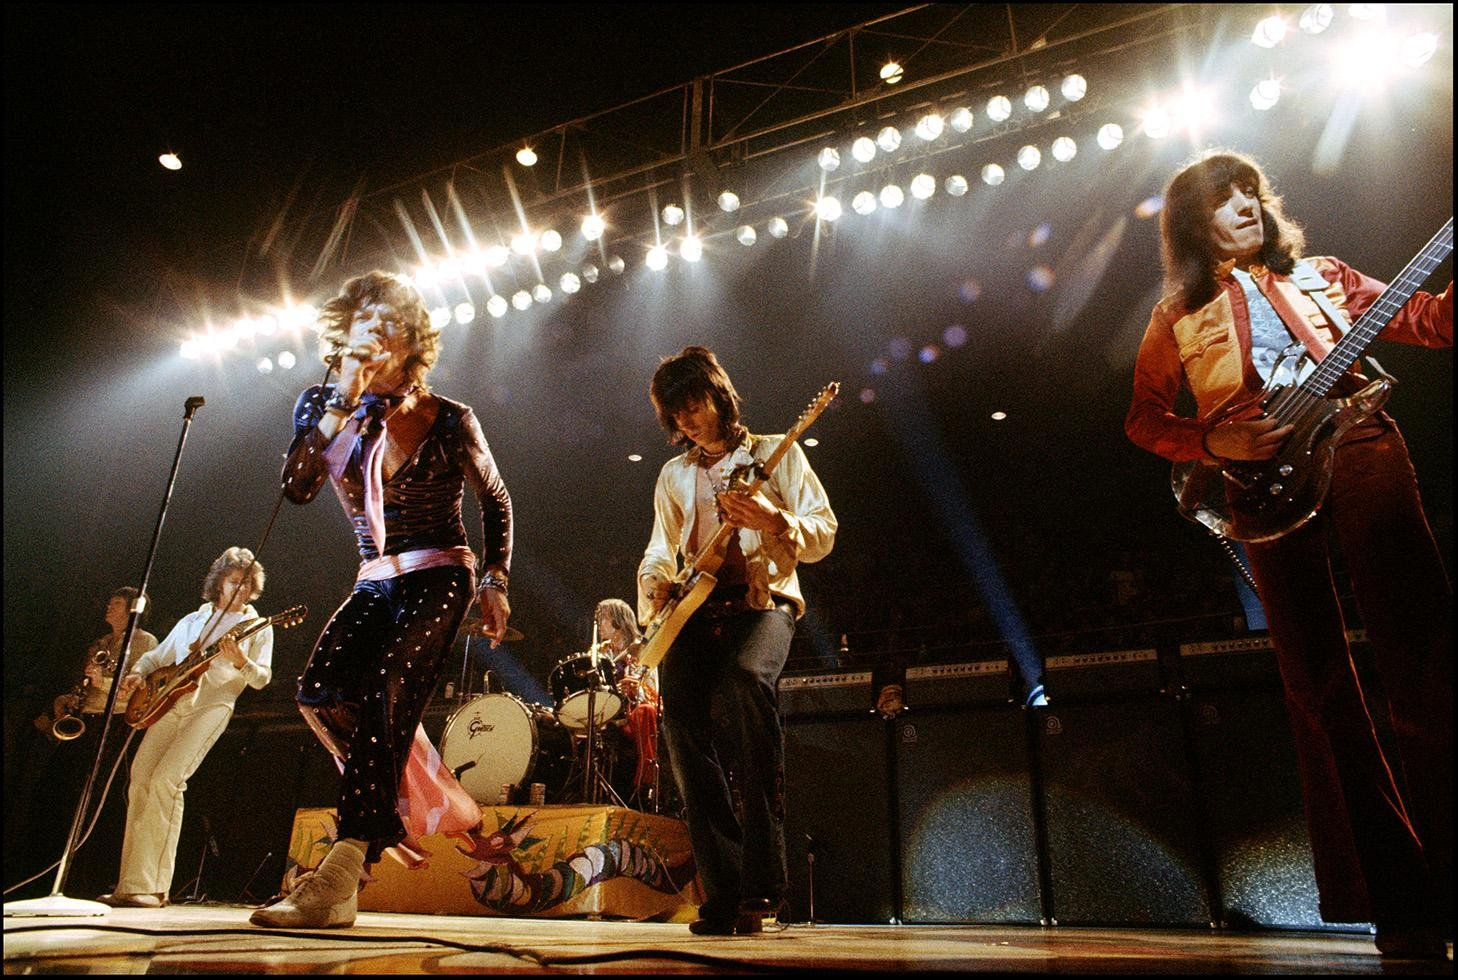 1972, Going glam, now with Mick Taylor on guitar, left, along with Mick, Charlie, Keith, and Bill